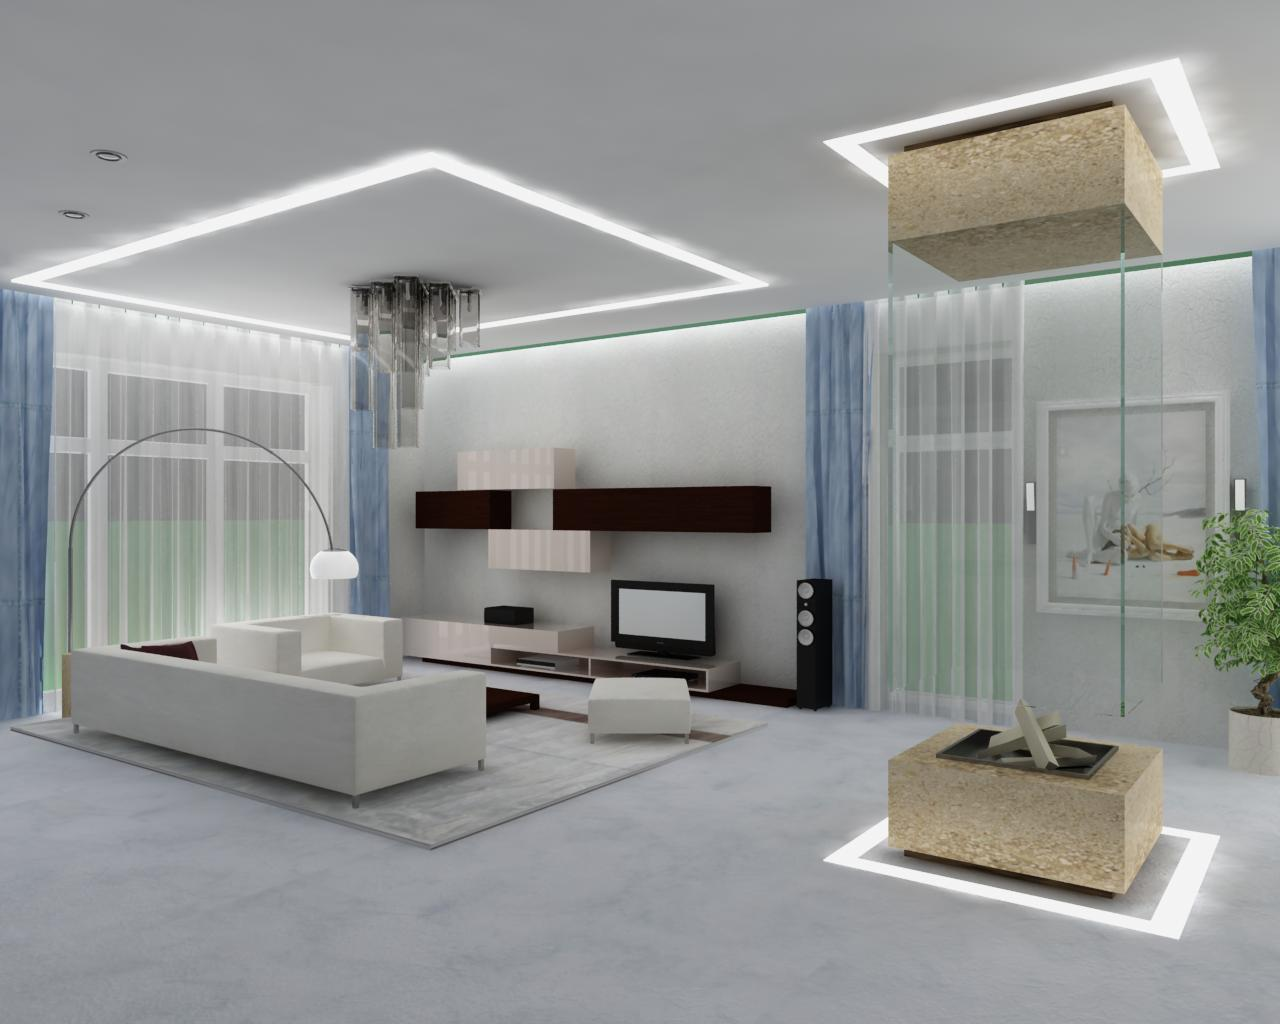 Image of: Living Room Design Simple